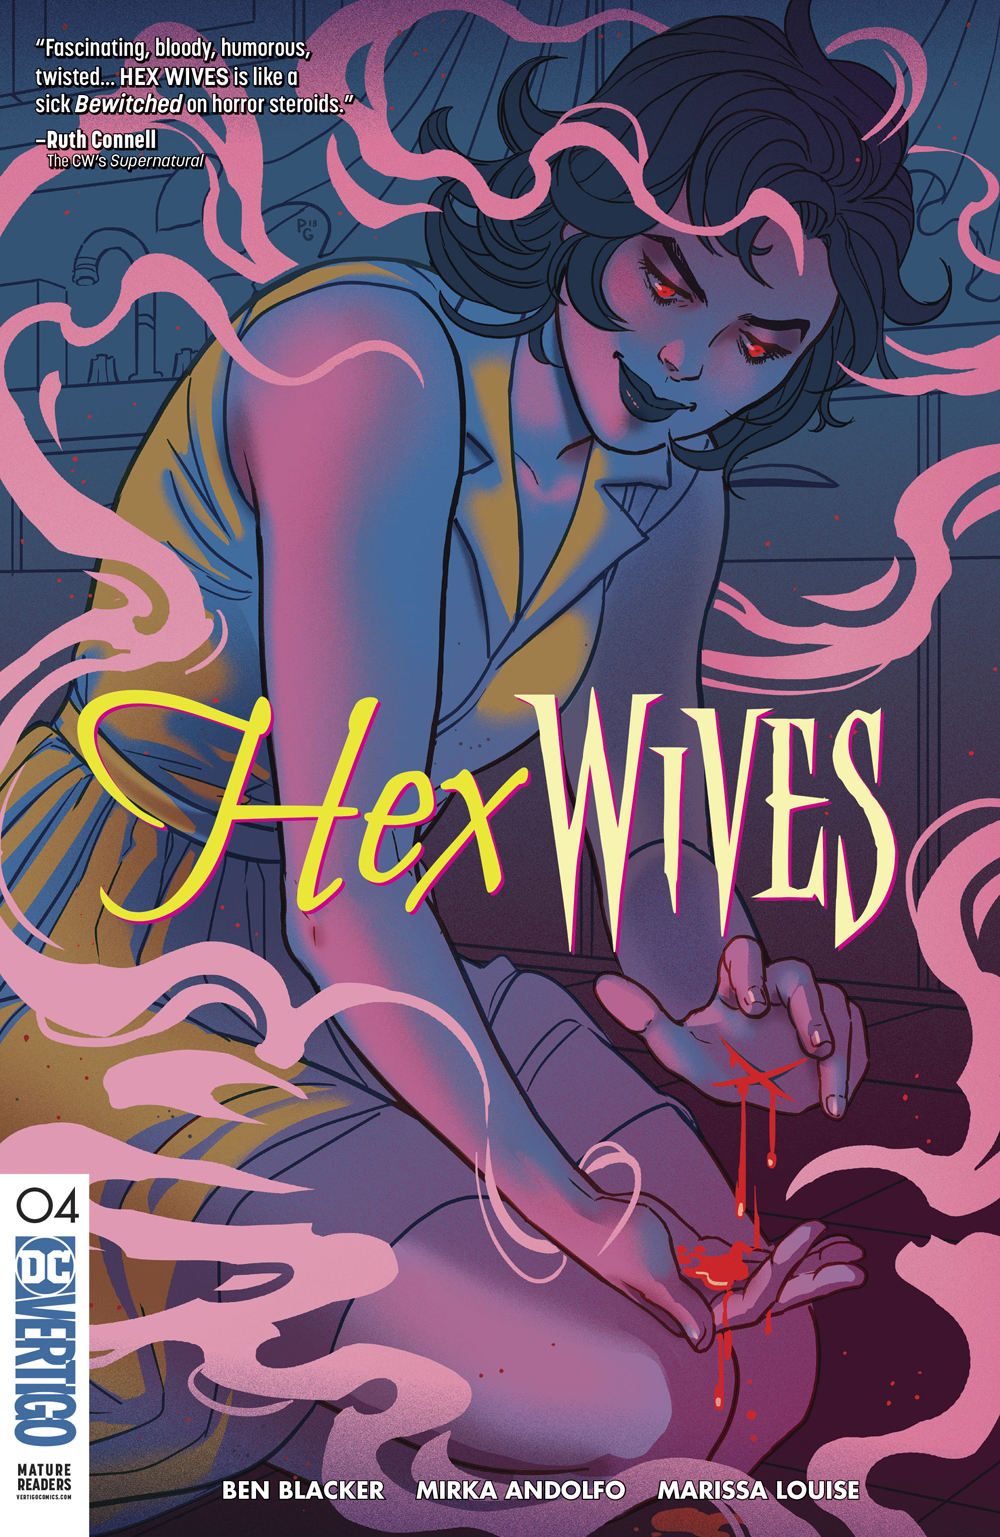 HEX WIVES #4 (OF 1) (MR)